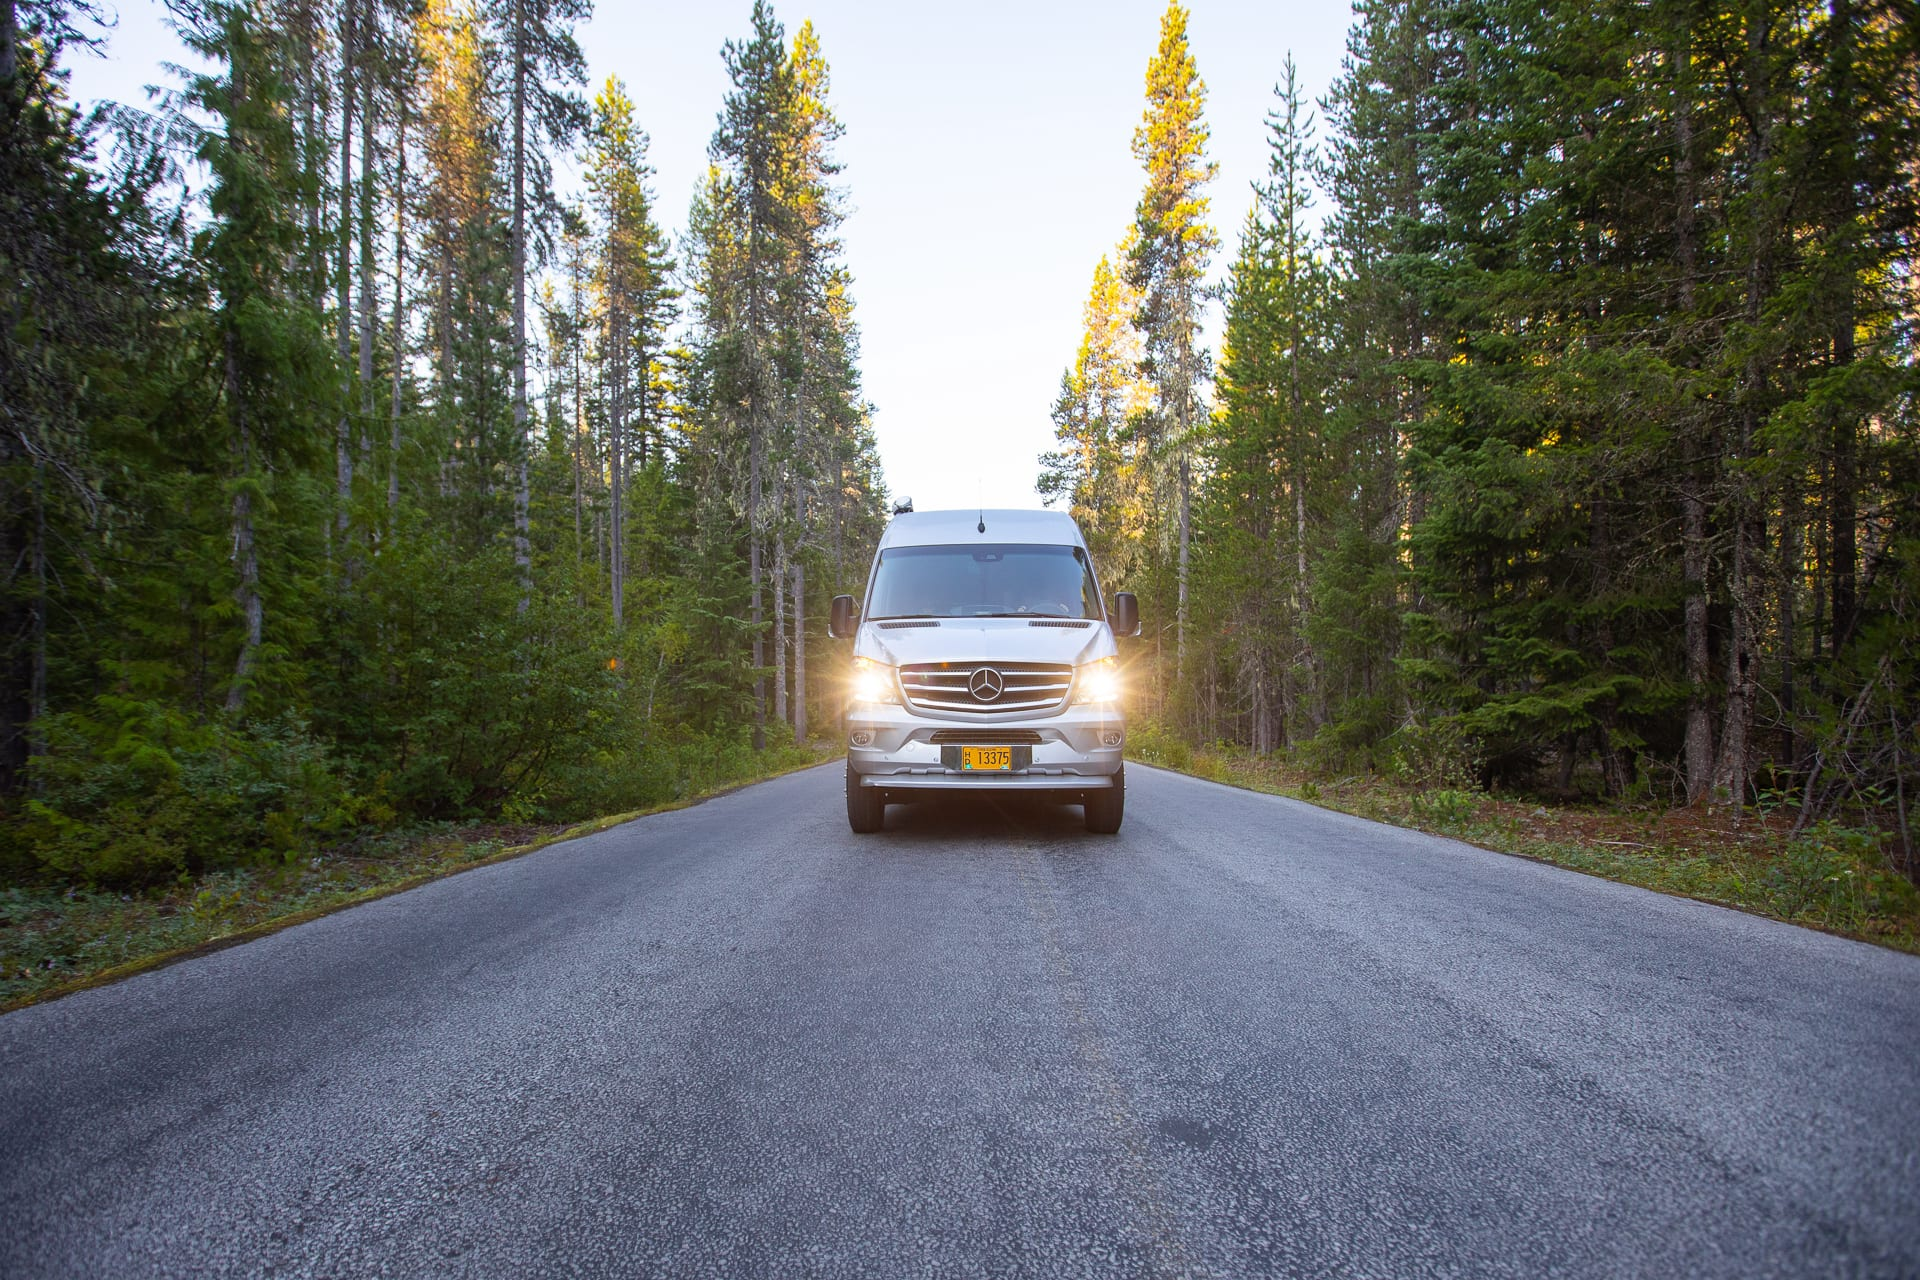 The Best Apps for Planning a Safe and Fun RV Route